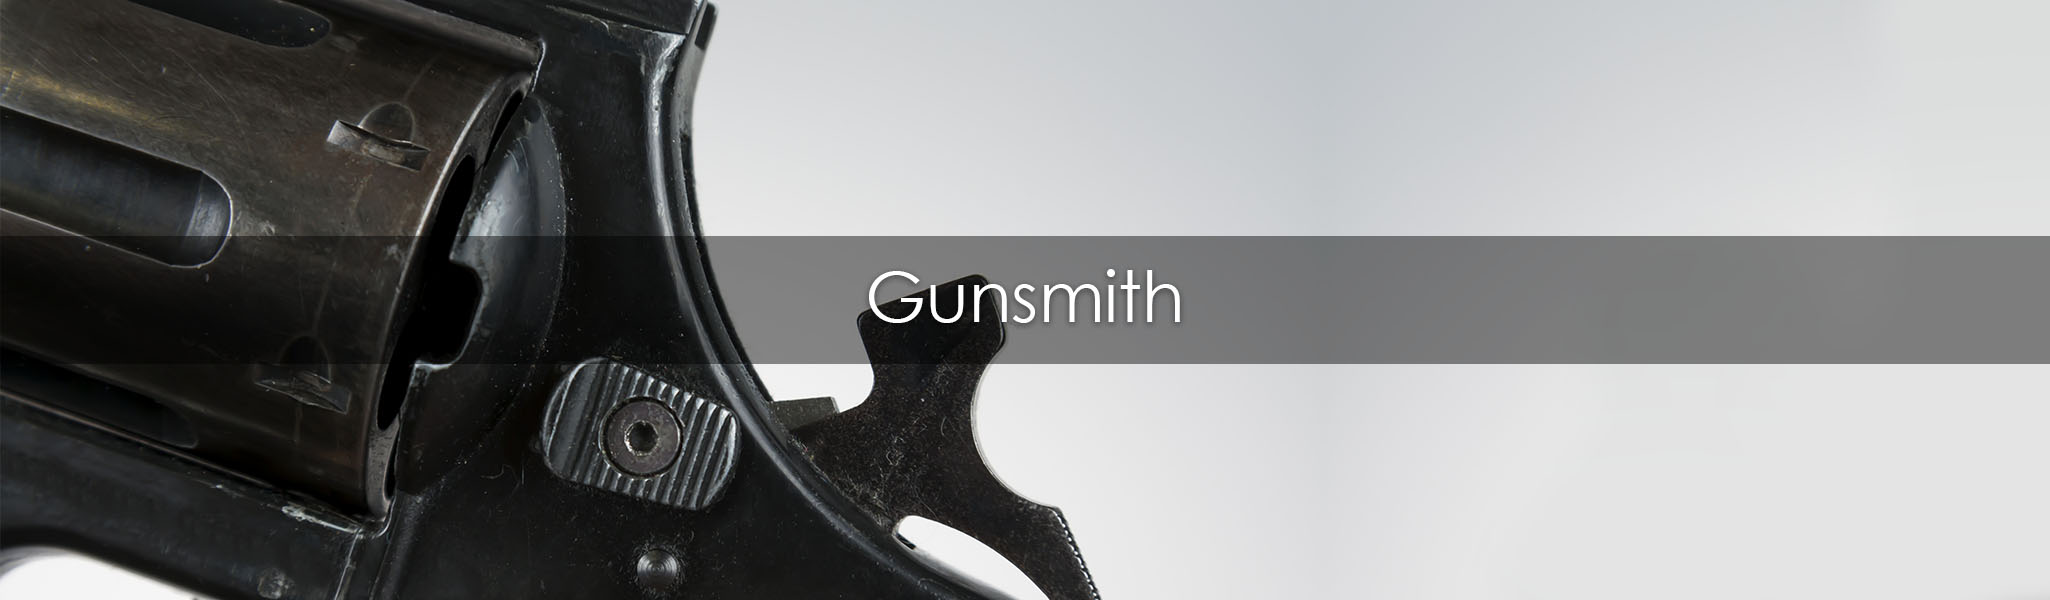 Gunsmith - 2050x600 interior sliders